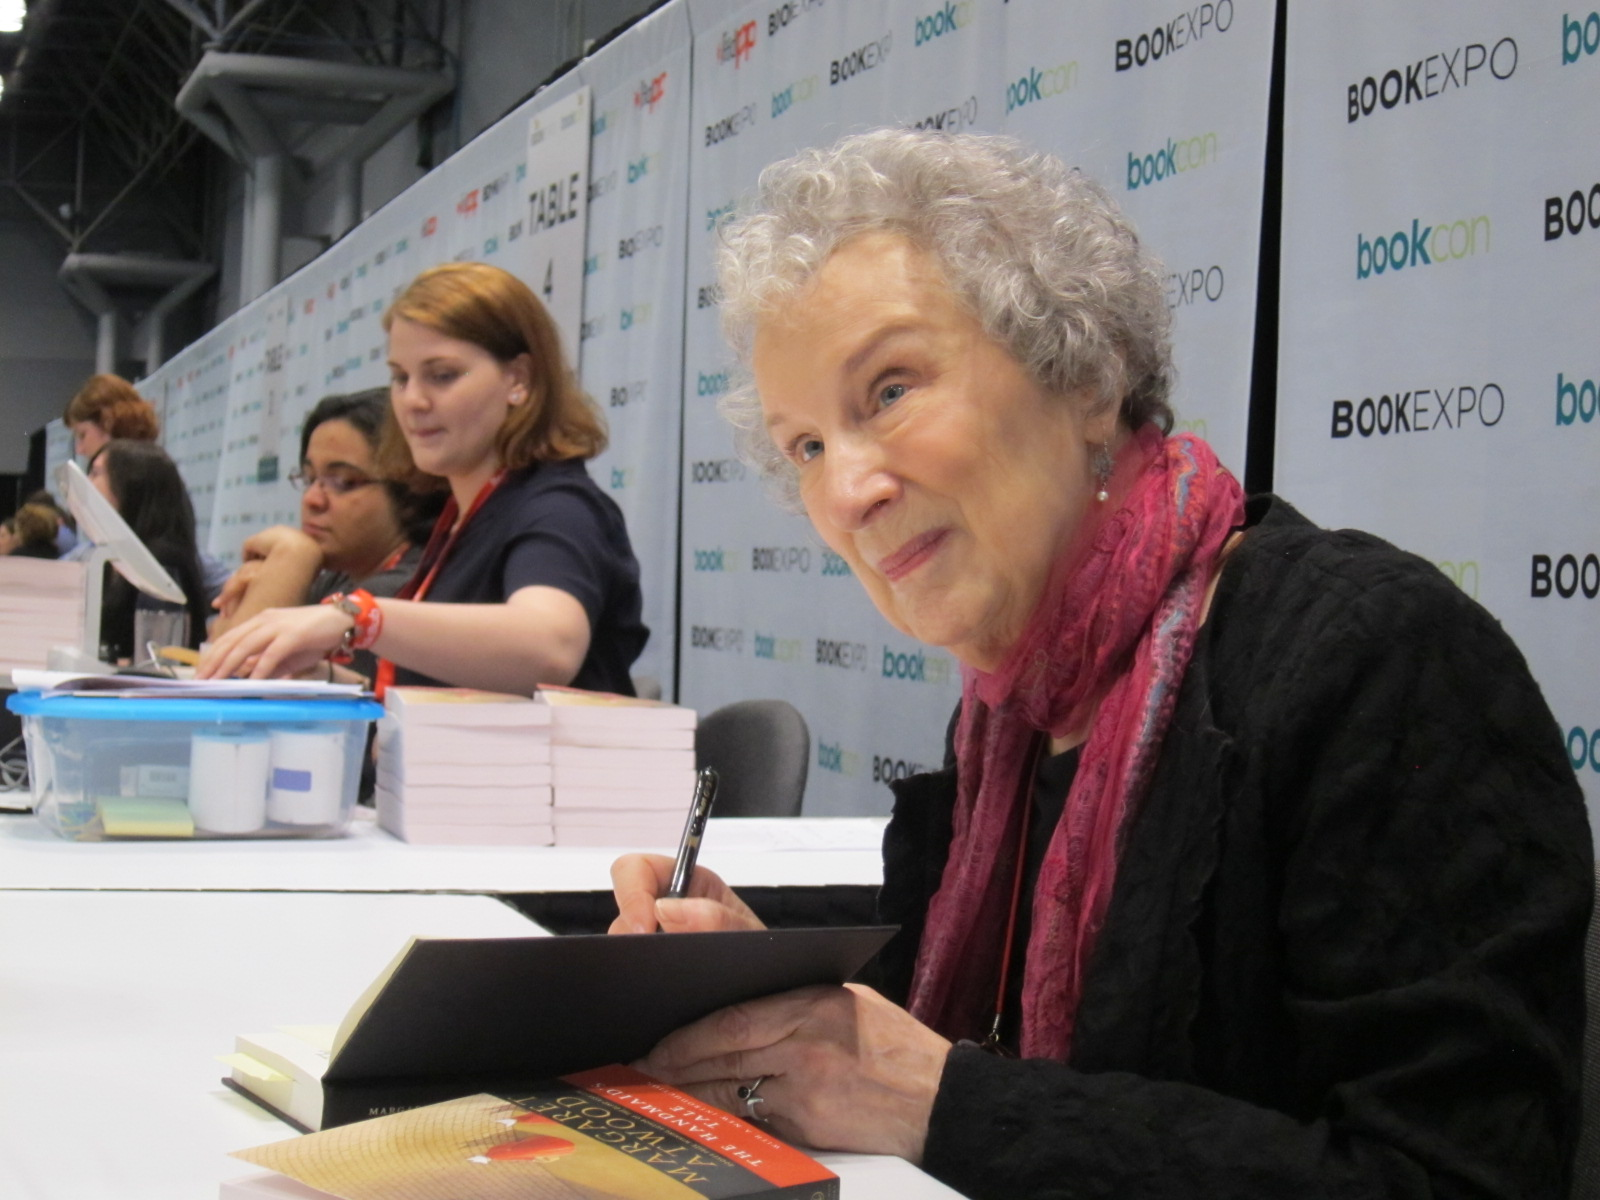 Buzz Builds for Atwood 'Handmaid's Tale' Follow-up